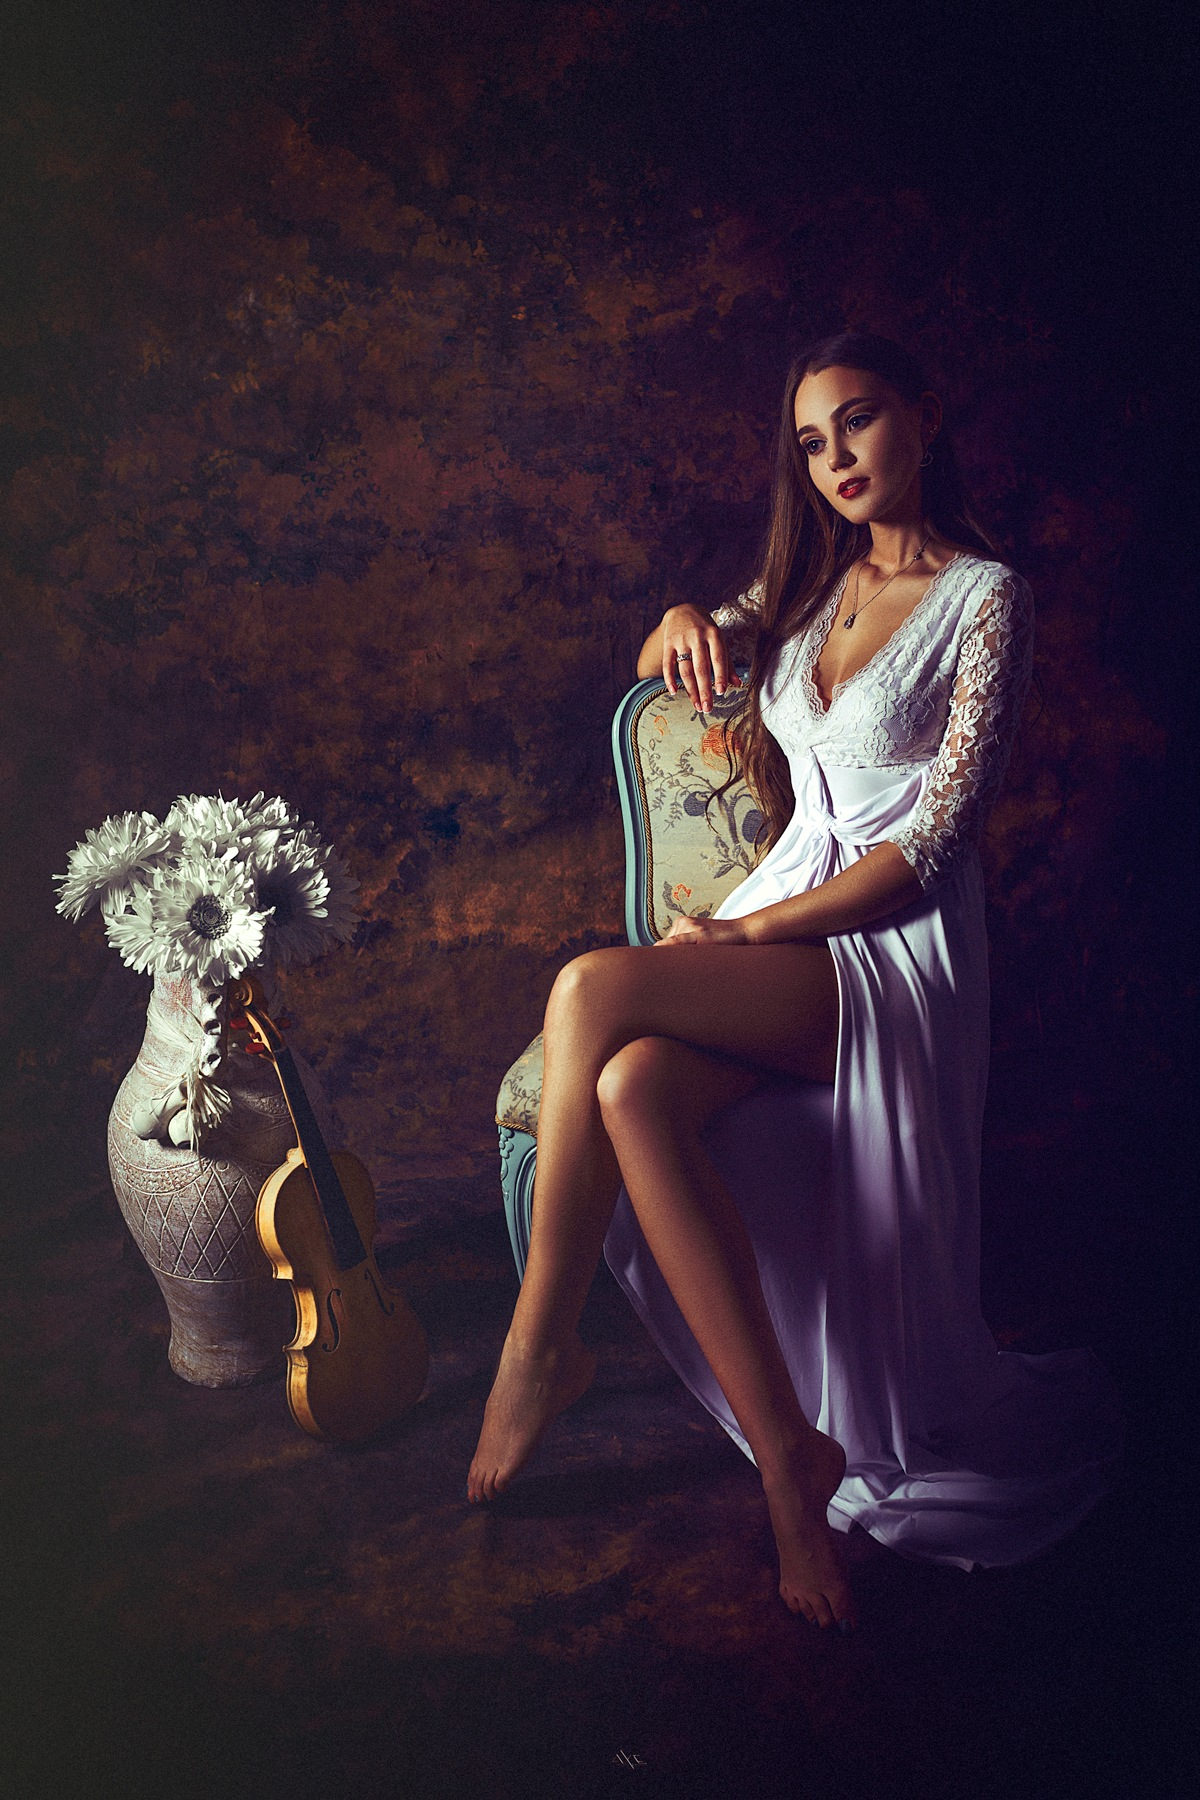 The Music of Beauty  by Ruslan  Bolgov (Axe Photography)